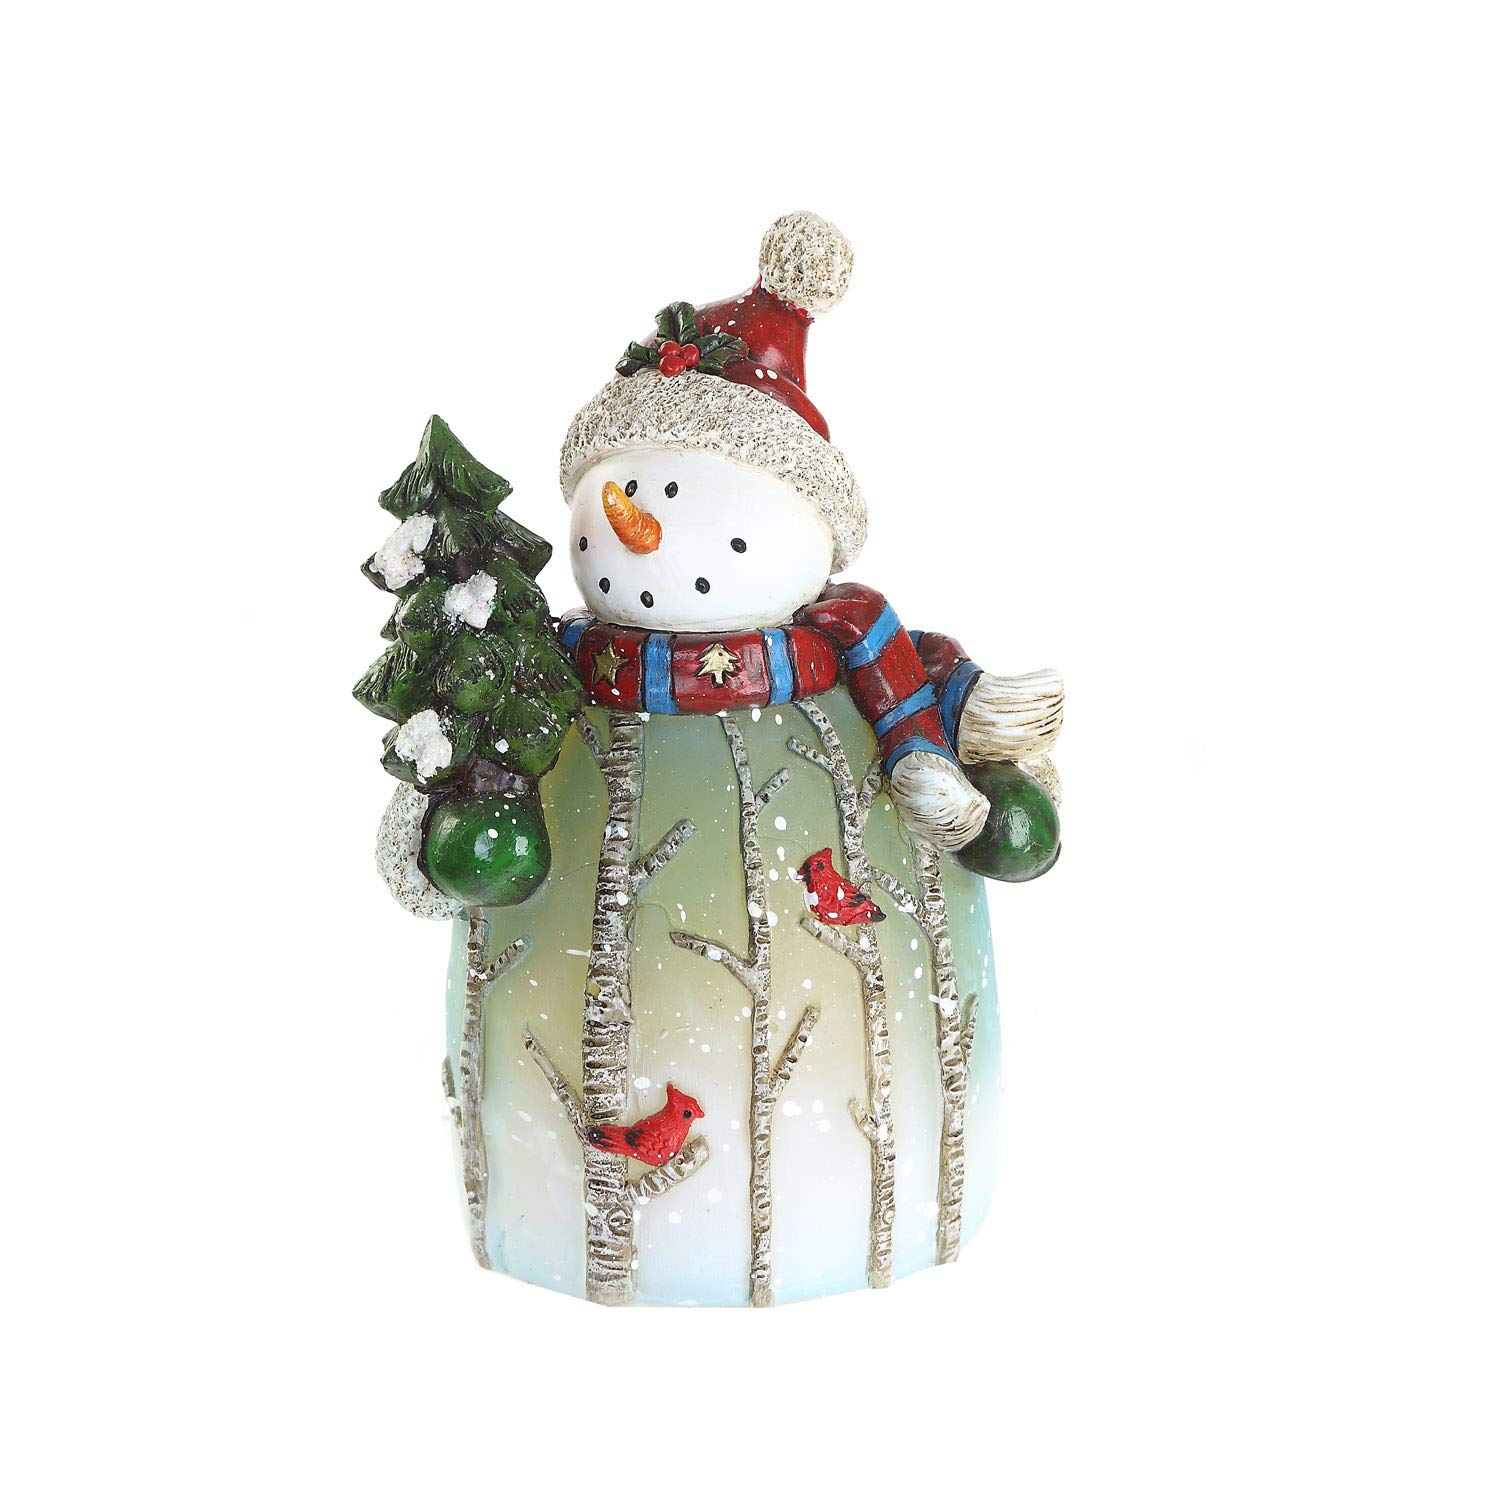 CEDAR HOME Snowman Statue with Tree Table Deocr Winter Scene LED Light Christmas Home Decoration Figurine Holiday Gift, 4.75''W x 3.25''D x 7''H